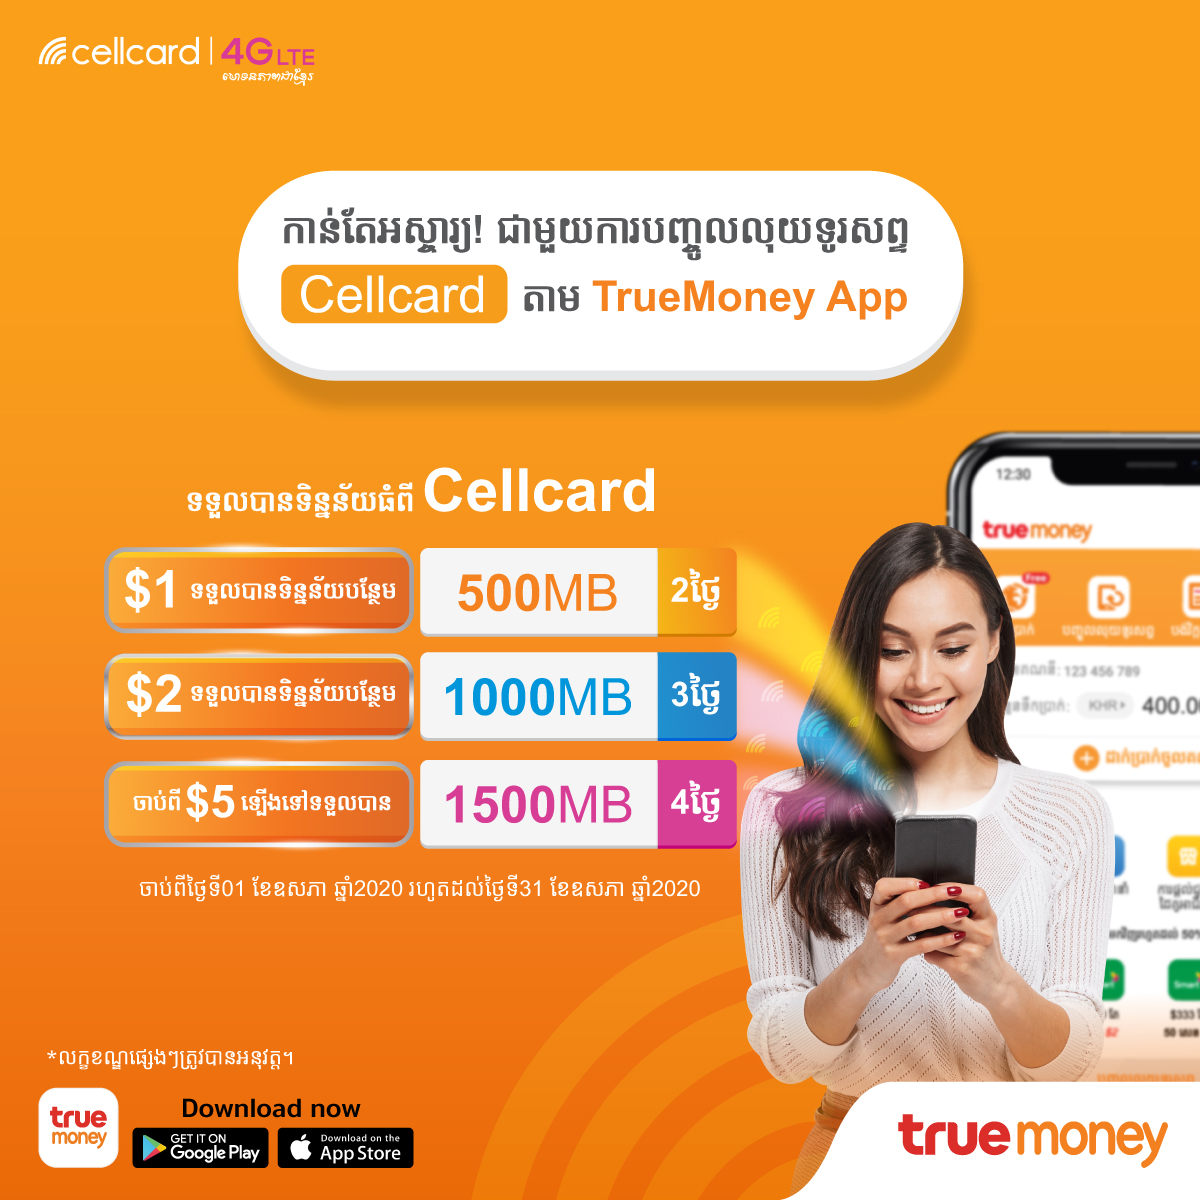 Get extra data from Cellcard